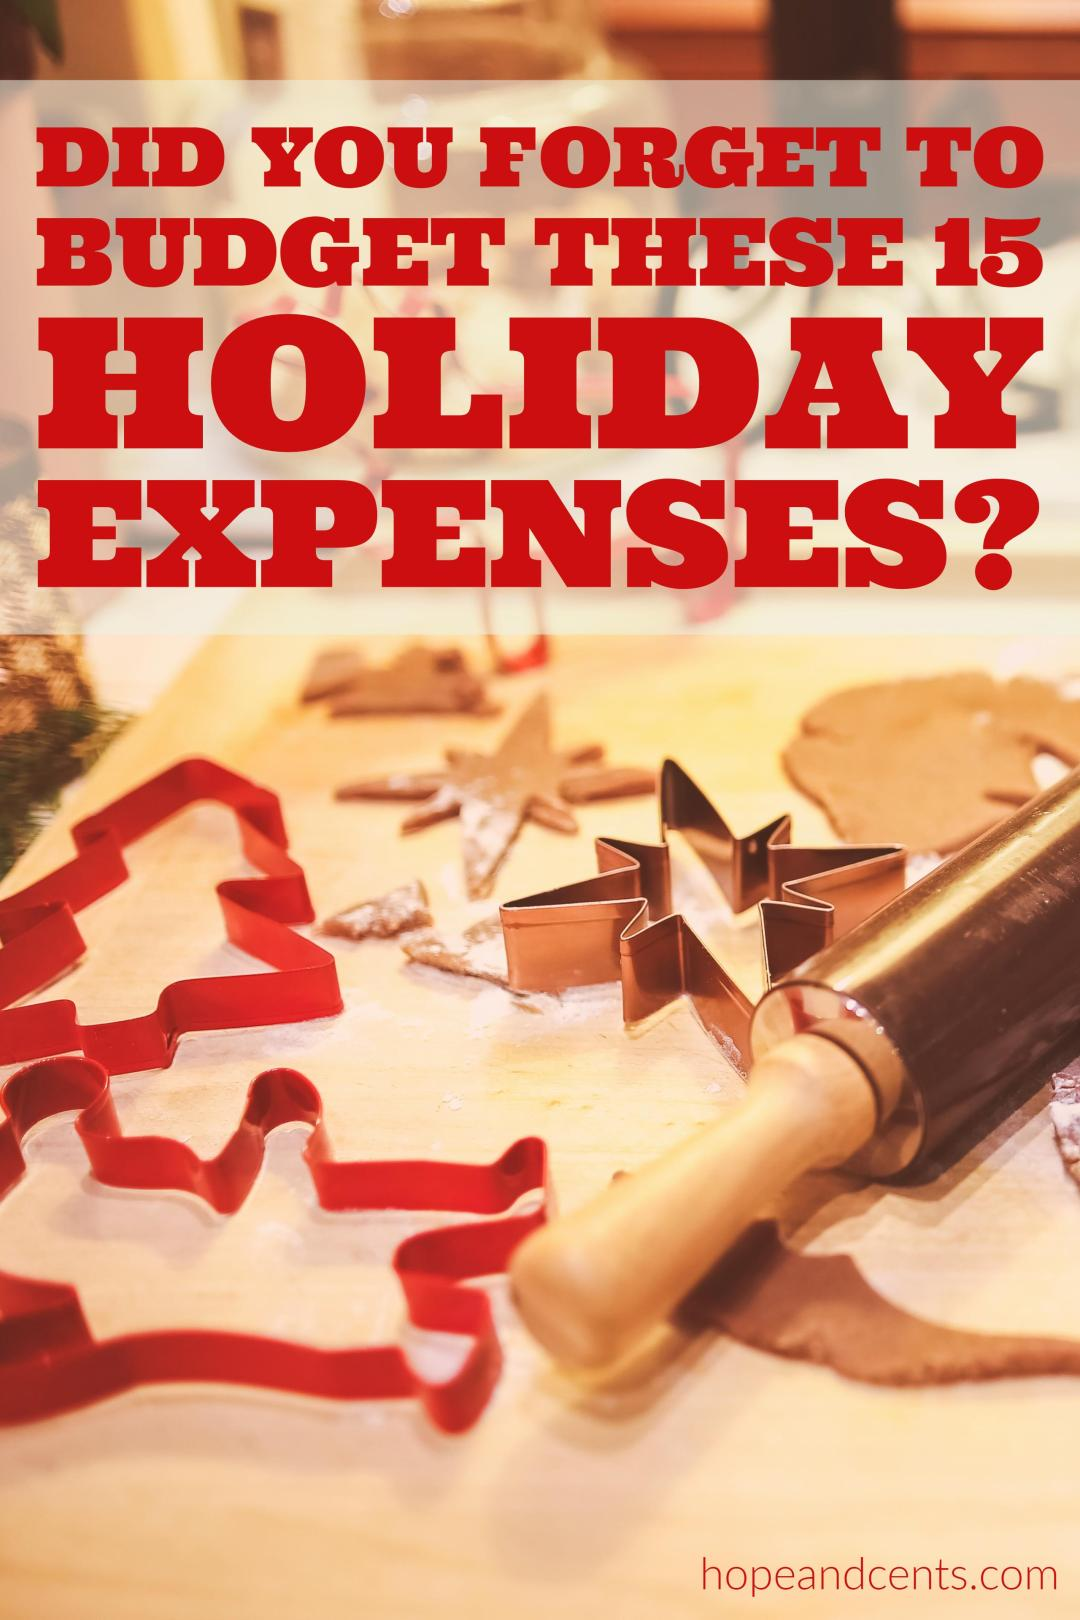 Did you do your Christmas budget? Here are 15 holiday expenses we tend to overlook. Read this to help you stick to your budget.